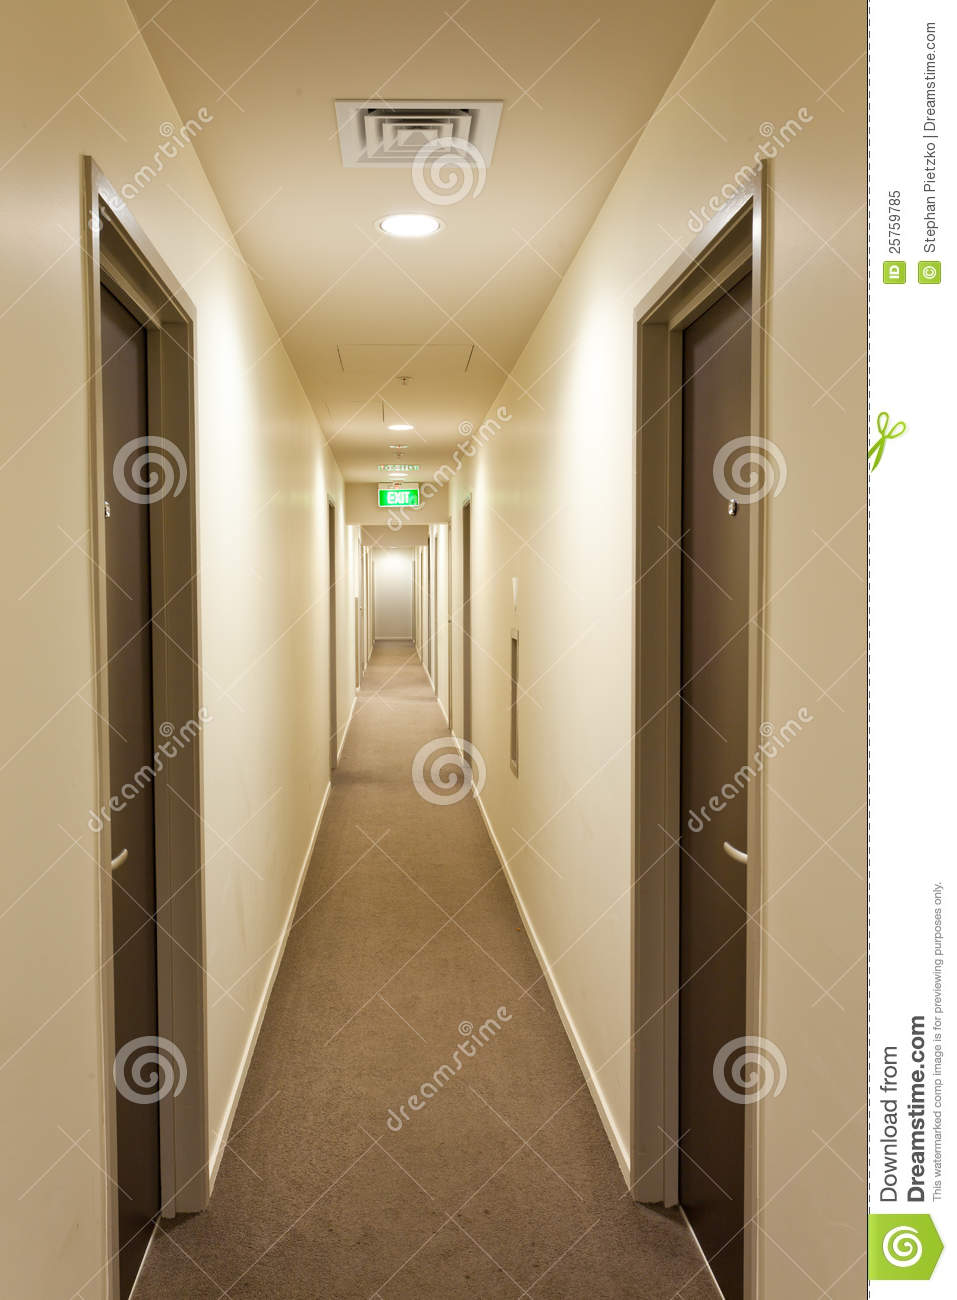 Long Corridor With Hotel Room Doors And Exit Sign Royalty